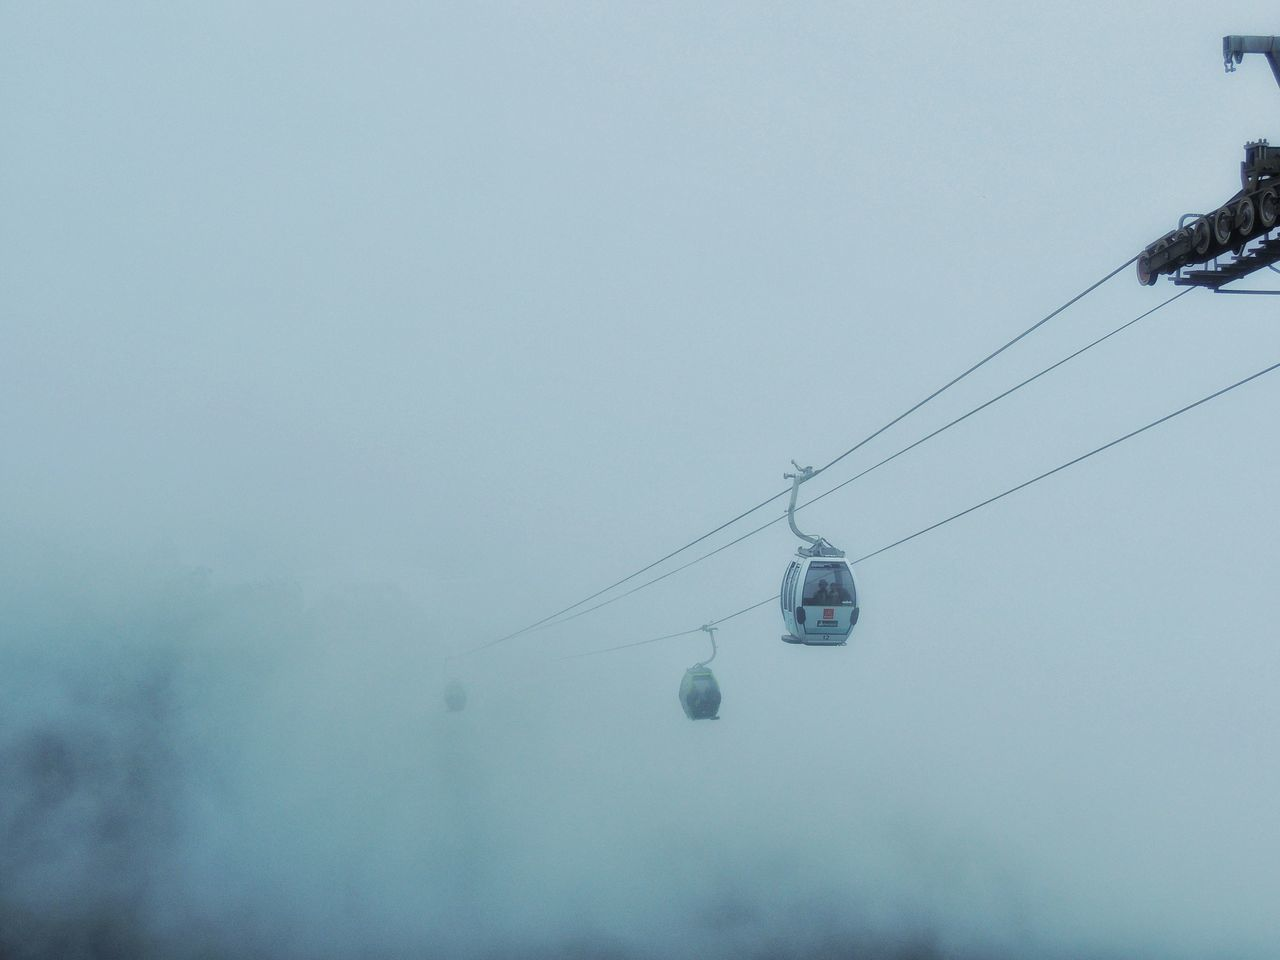 hanging, nature, day, sky, fog, low angle view, overhead cable car, copy space, outdoors, cable, beauty in nature, scenics, no people, tree, ski lift